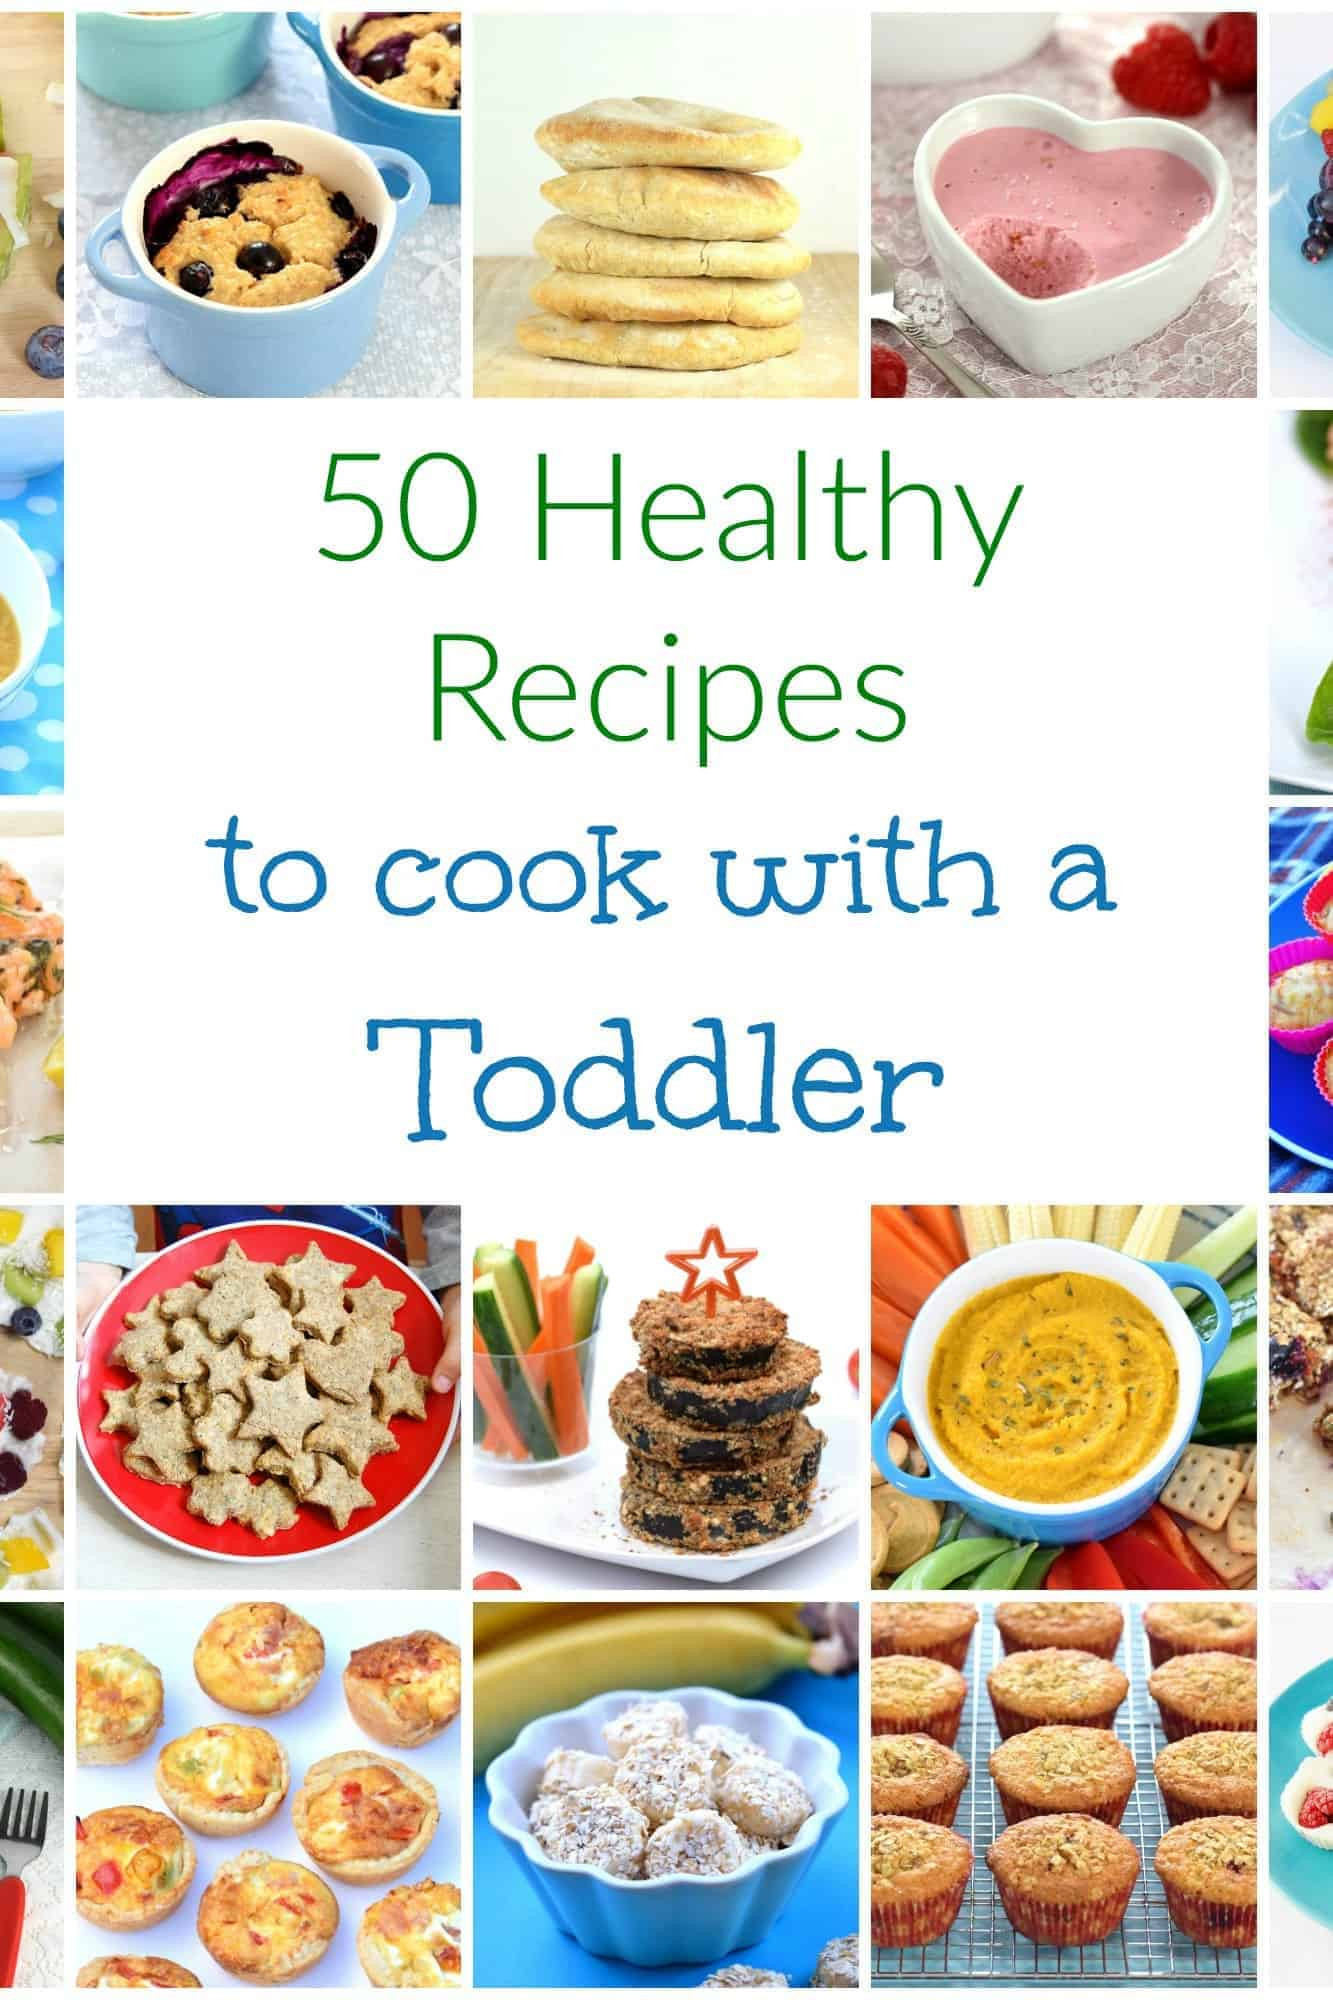 Healthy Recipes For Children  50 Healthy Recipes to Cook with Toddlers